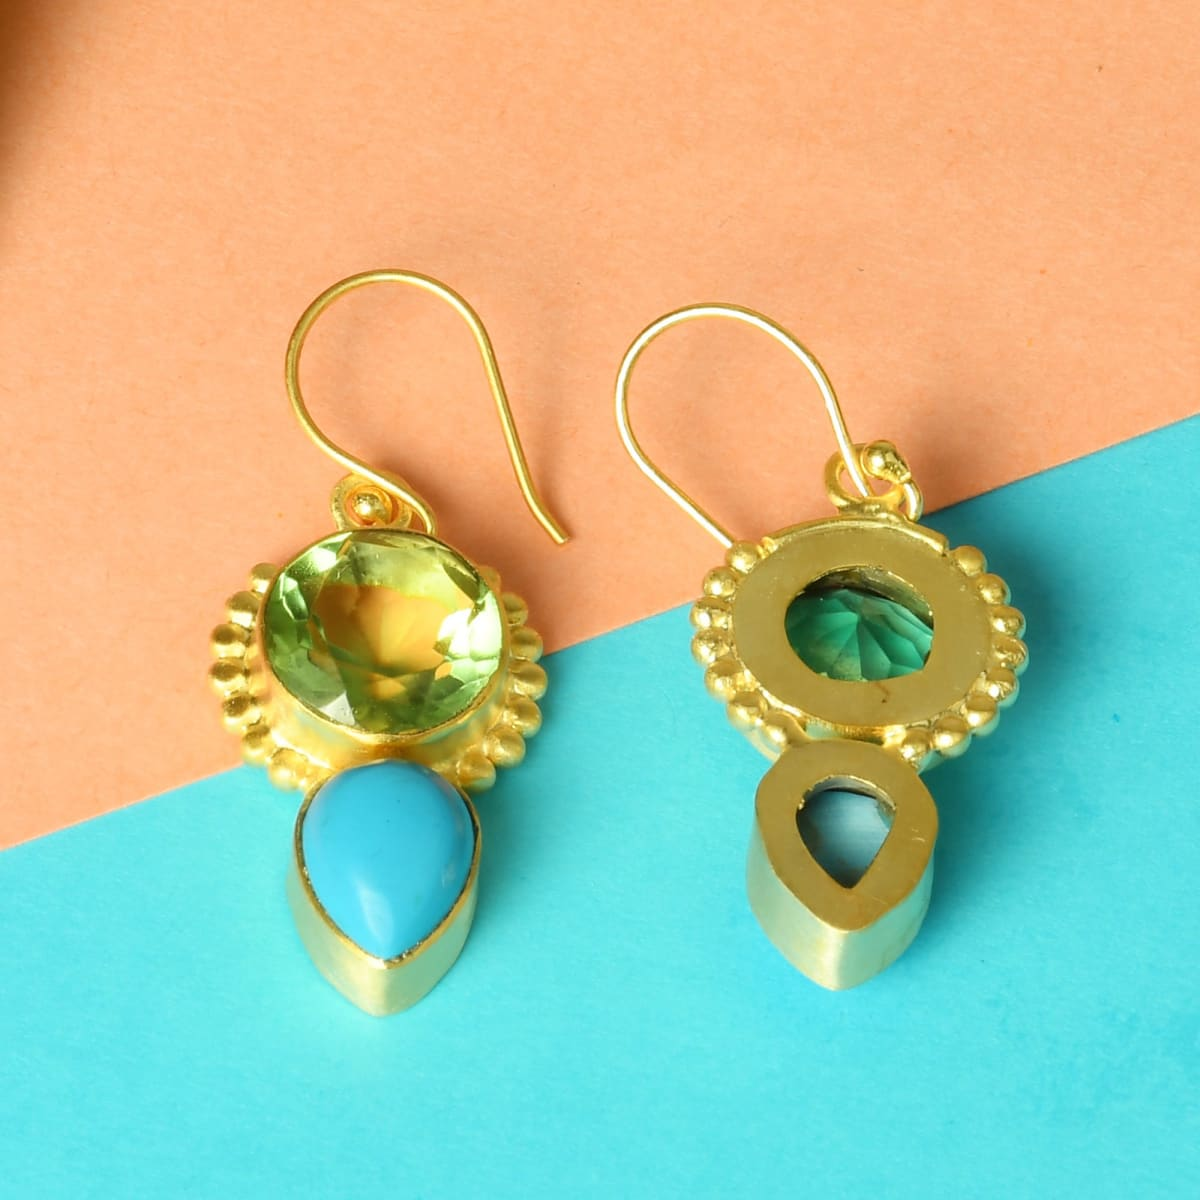 Round Shape Green Amethyst And Turquoise Gemstone Friendship Dangle Earrings - by Bhagat Jewels